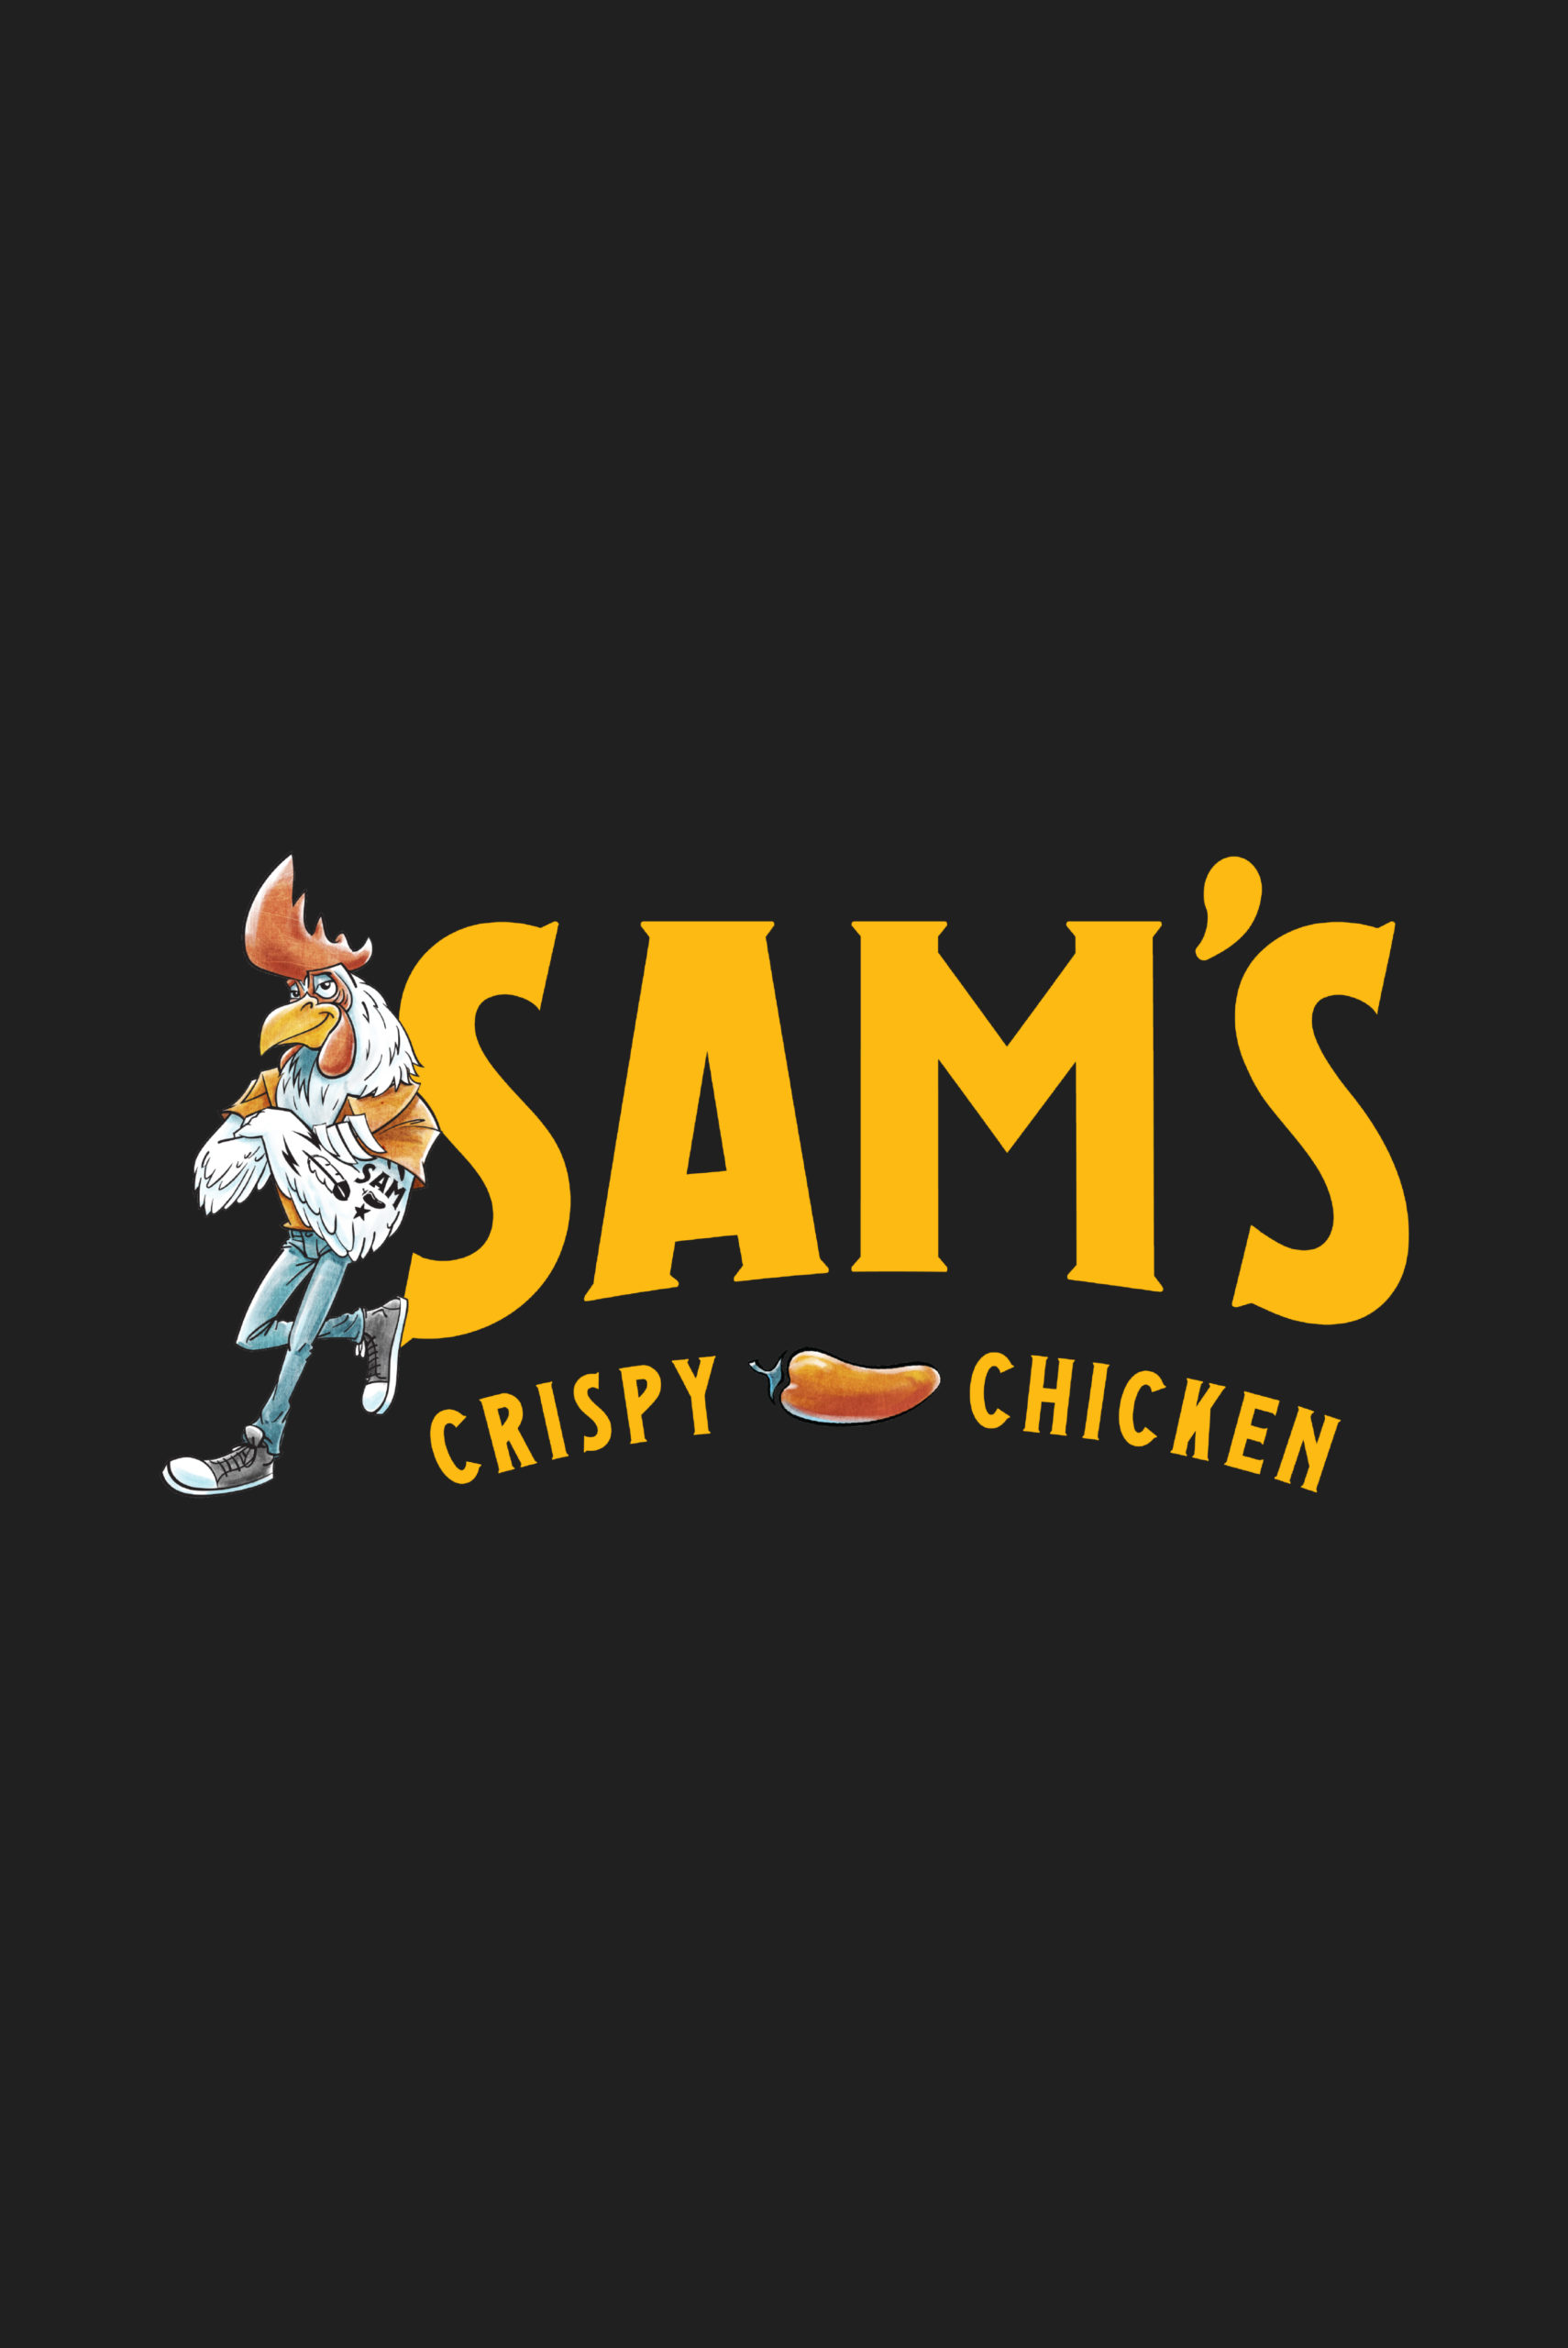 SAM'S CRISPY CHICKEN